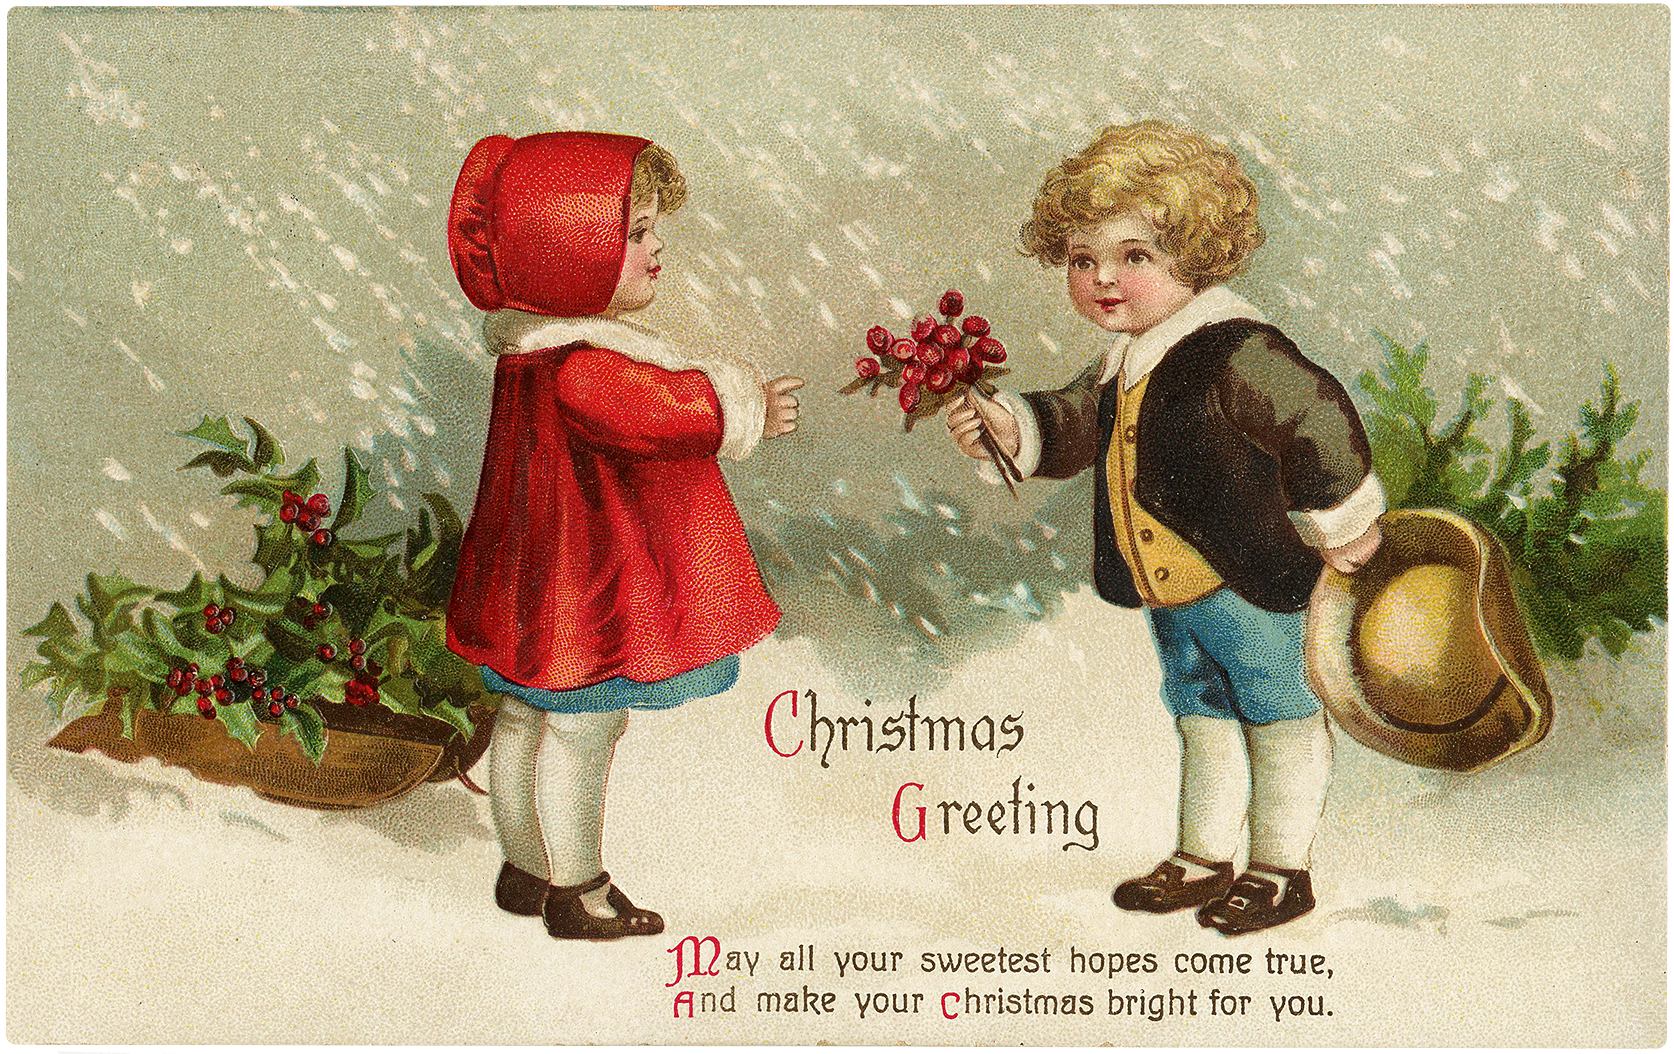 Nostalgic Boy and Girl with Christmas Bouquet Image!